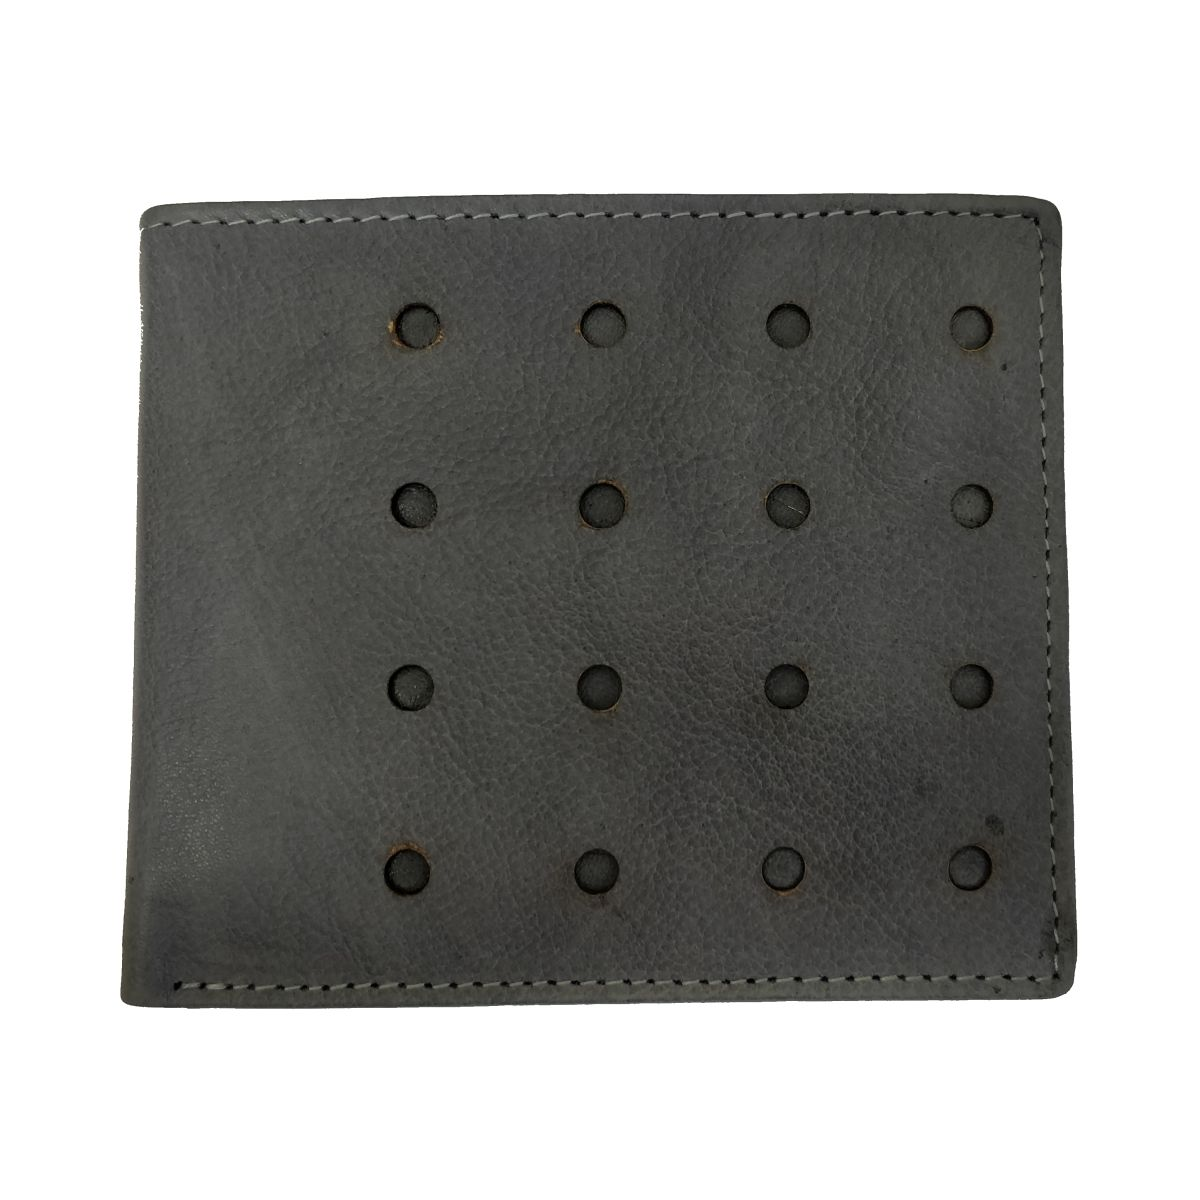 Leather Wallet Sixteen Holes With Coin Pouch - Grey